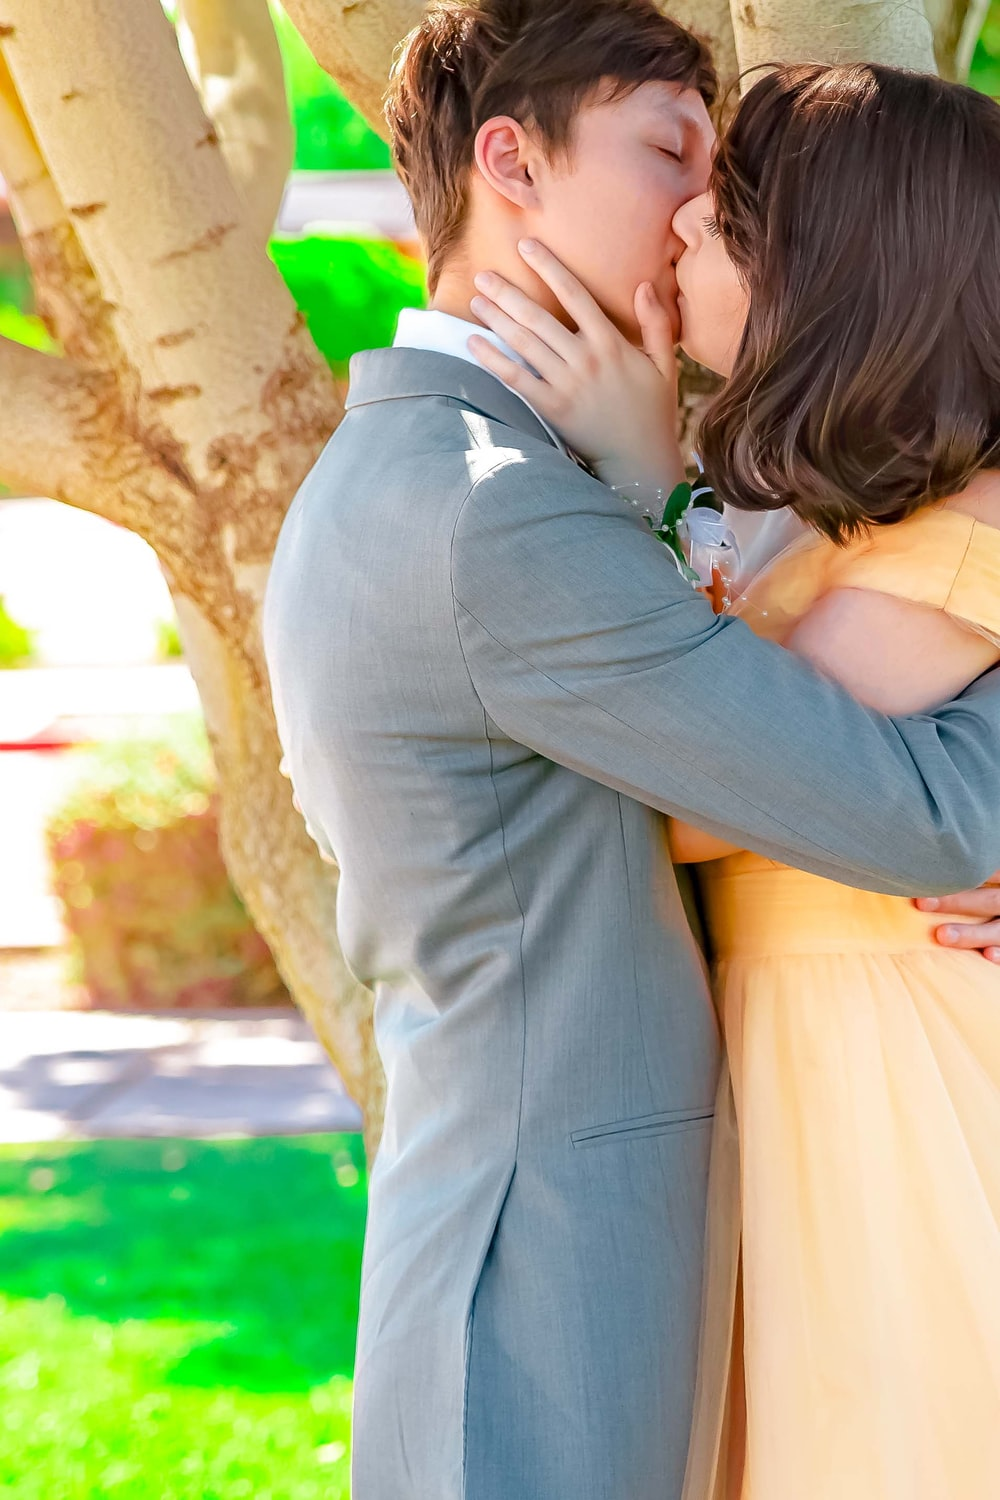 man in gray suit kissing woman in yellow dress